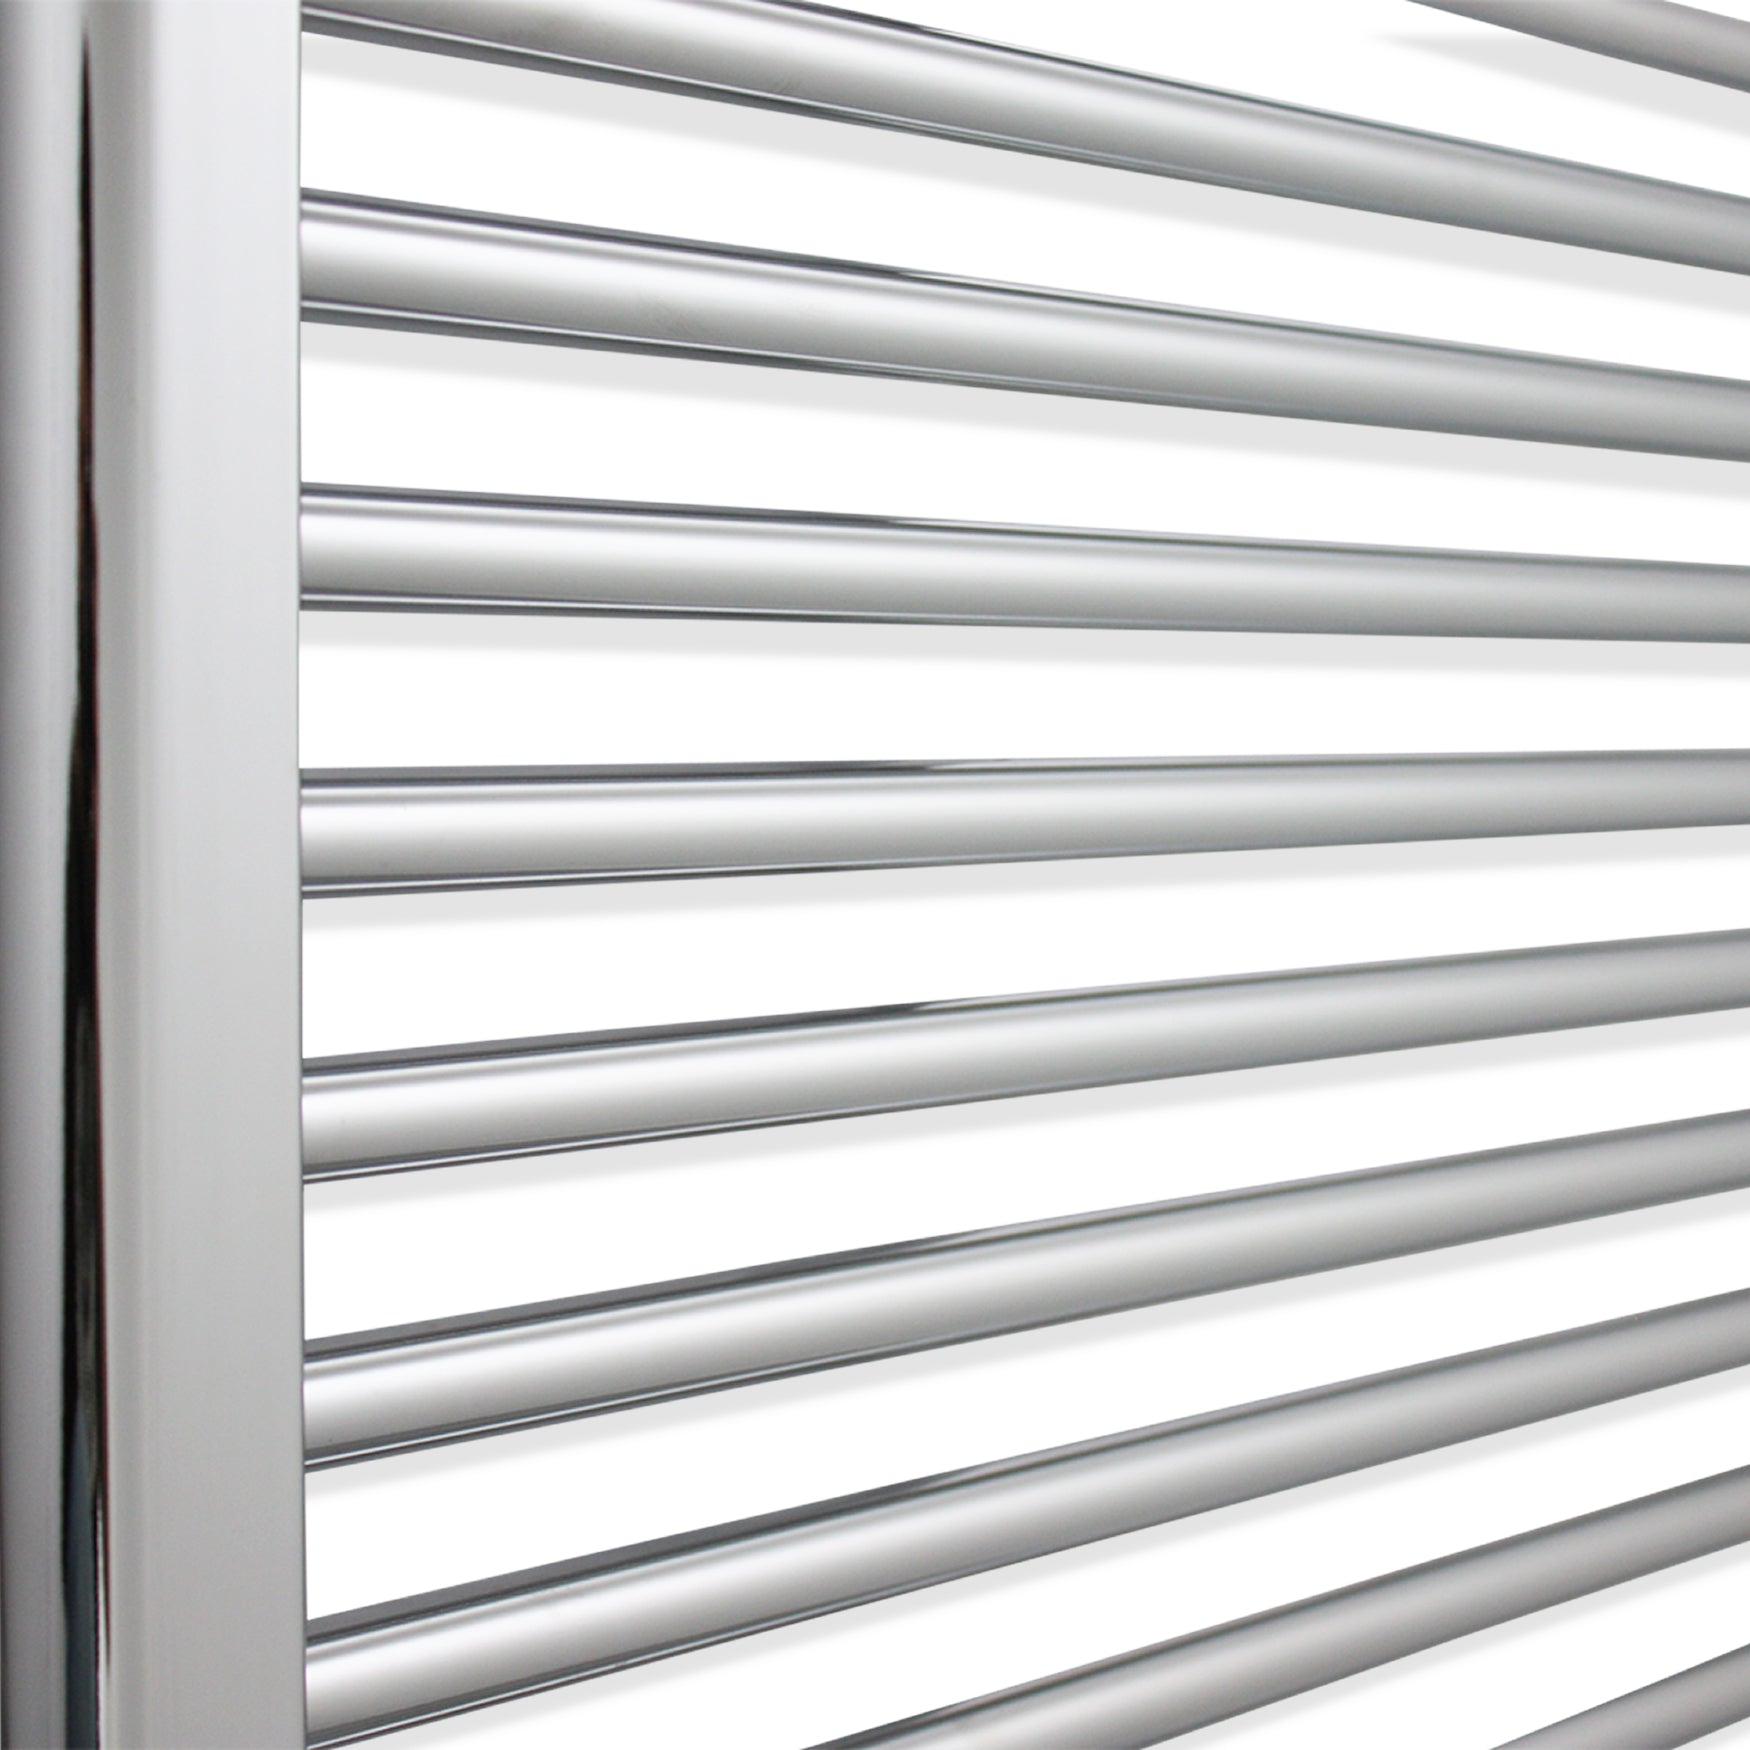 950mm Wide 1000mm High Flat Chrome Heated Towel Rail Radiator HTR